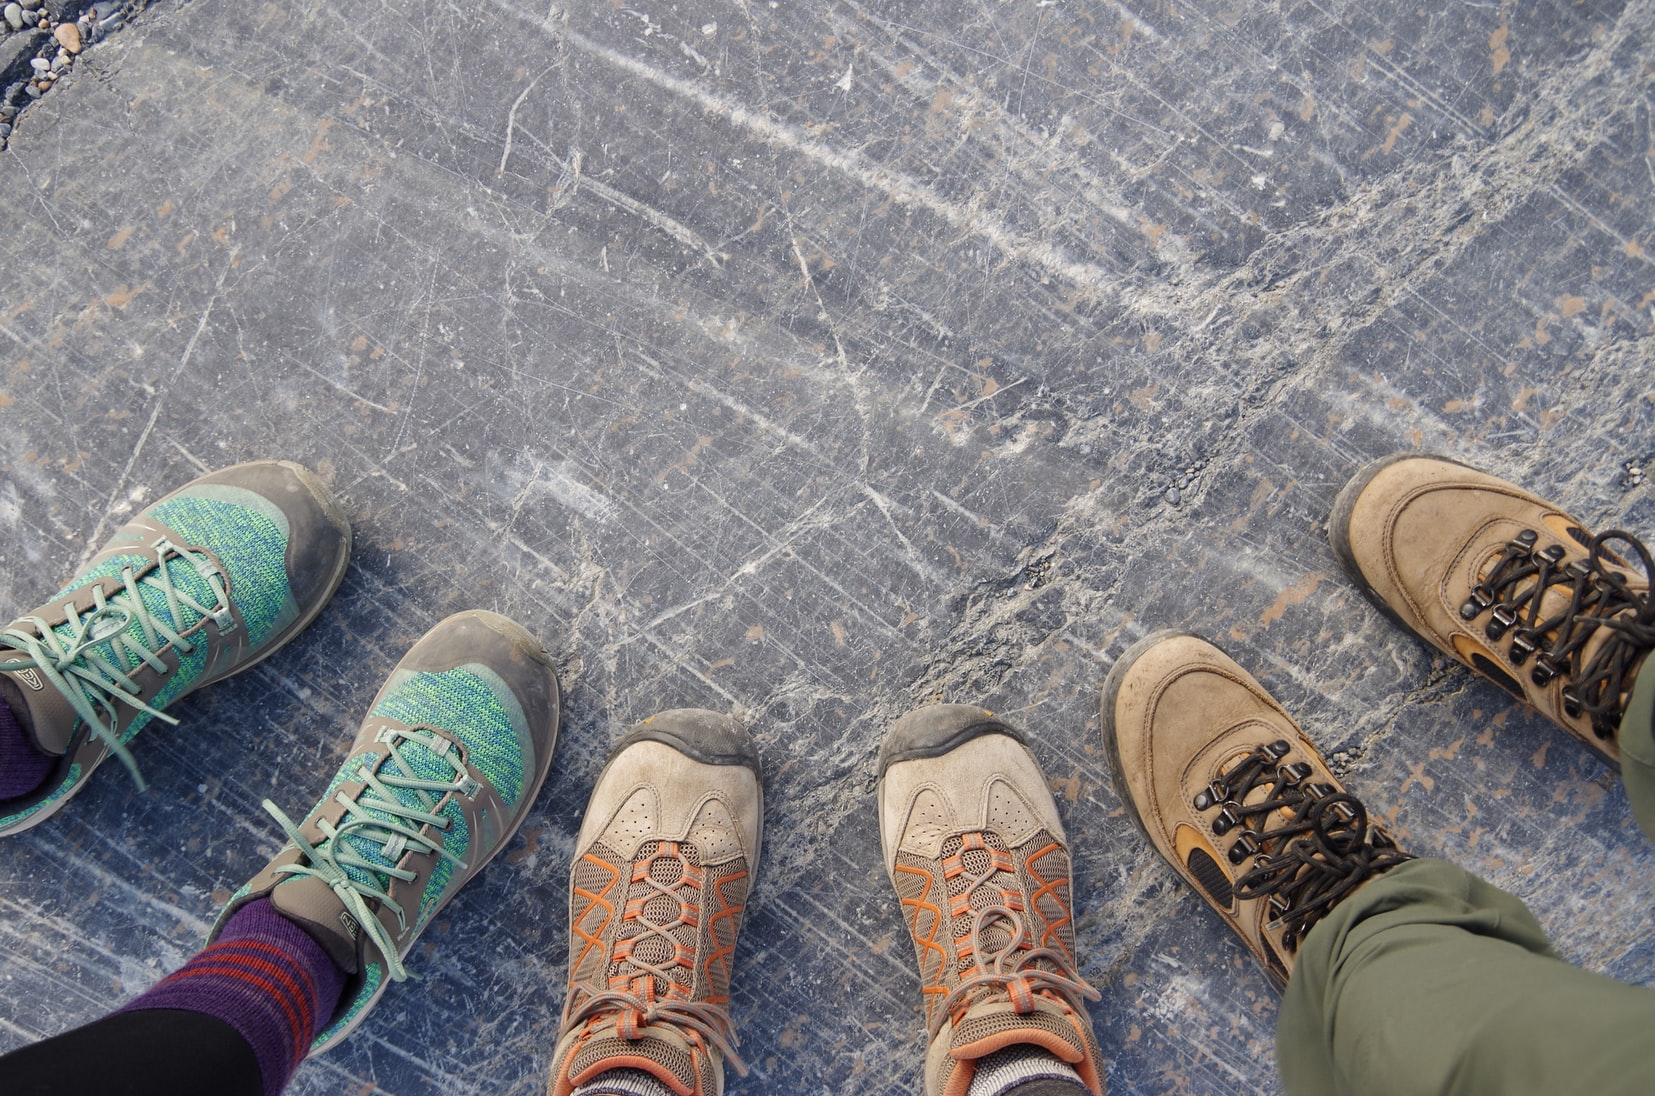 Three persons looking down on their colorful sneakers